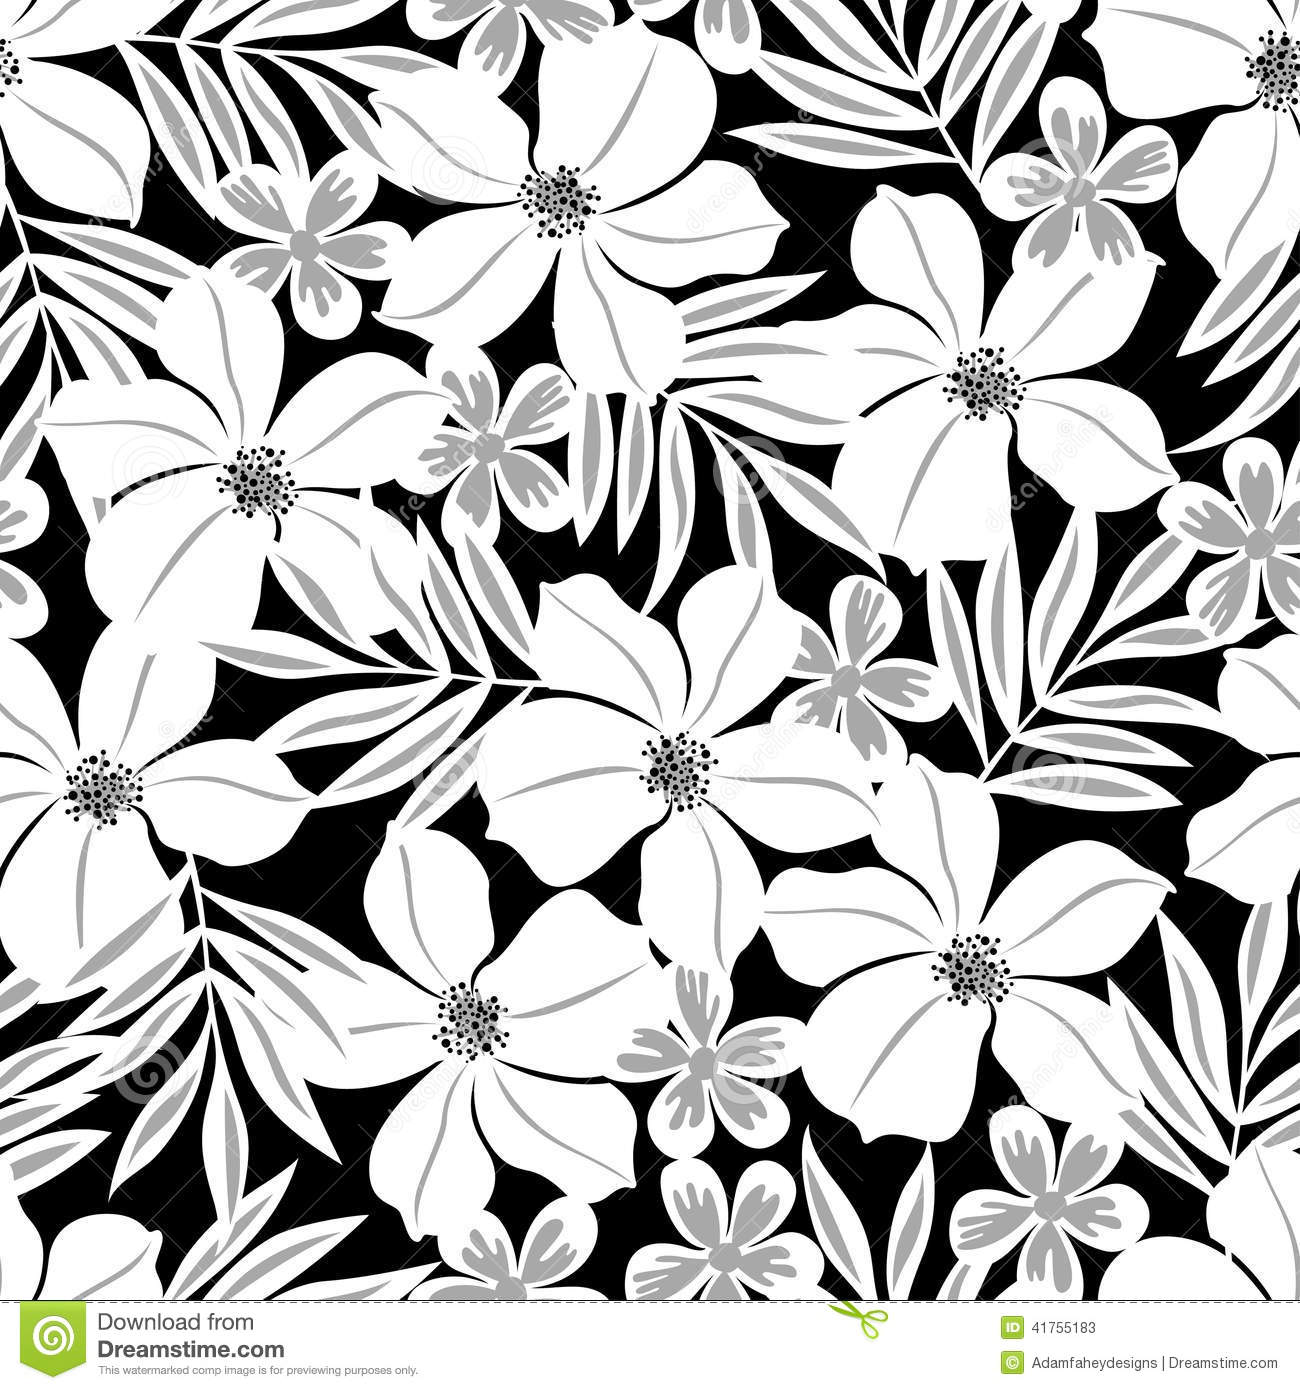 White tropical flower on a black background seamless pattern white tropical flower on a black background seamless pattern illustration 41755183 megapixl mightylinksfo